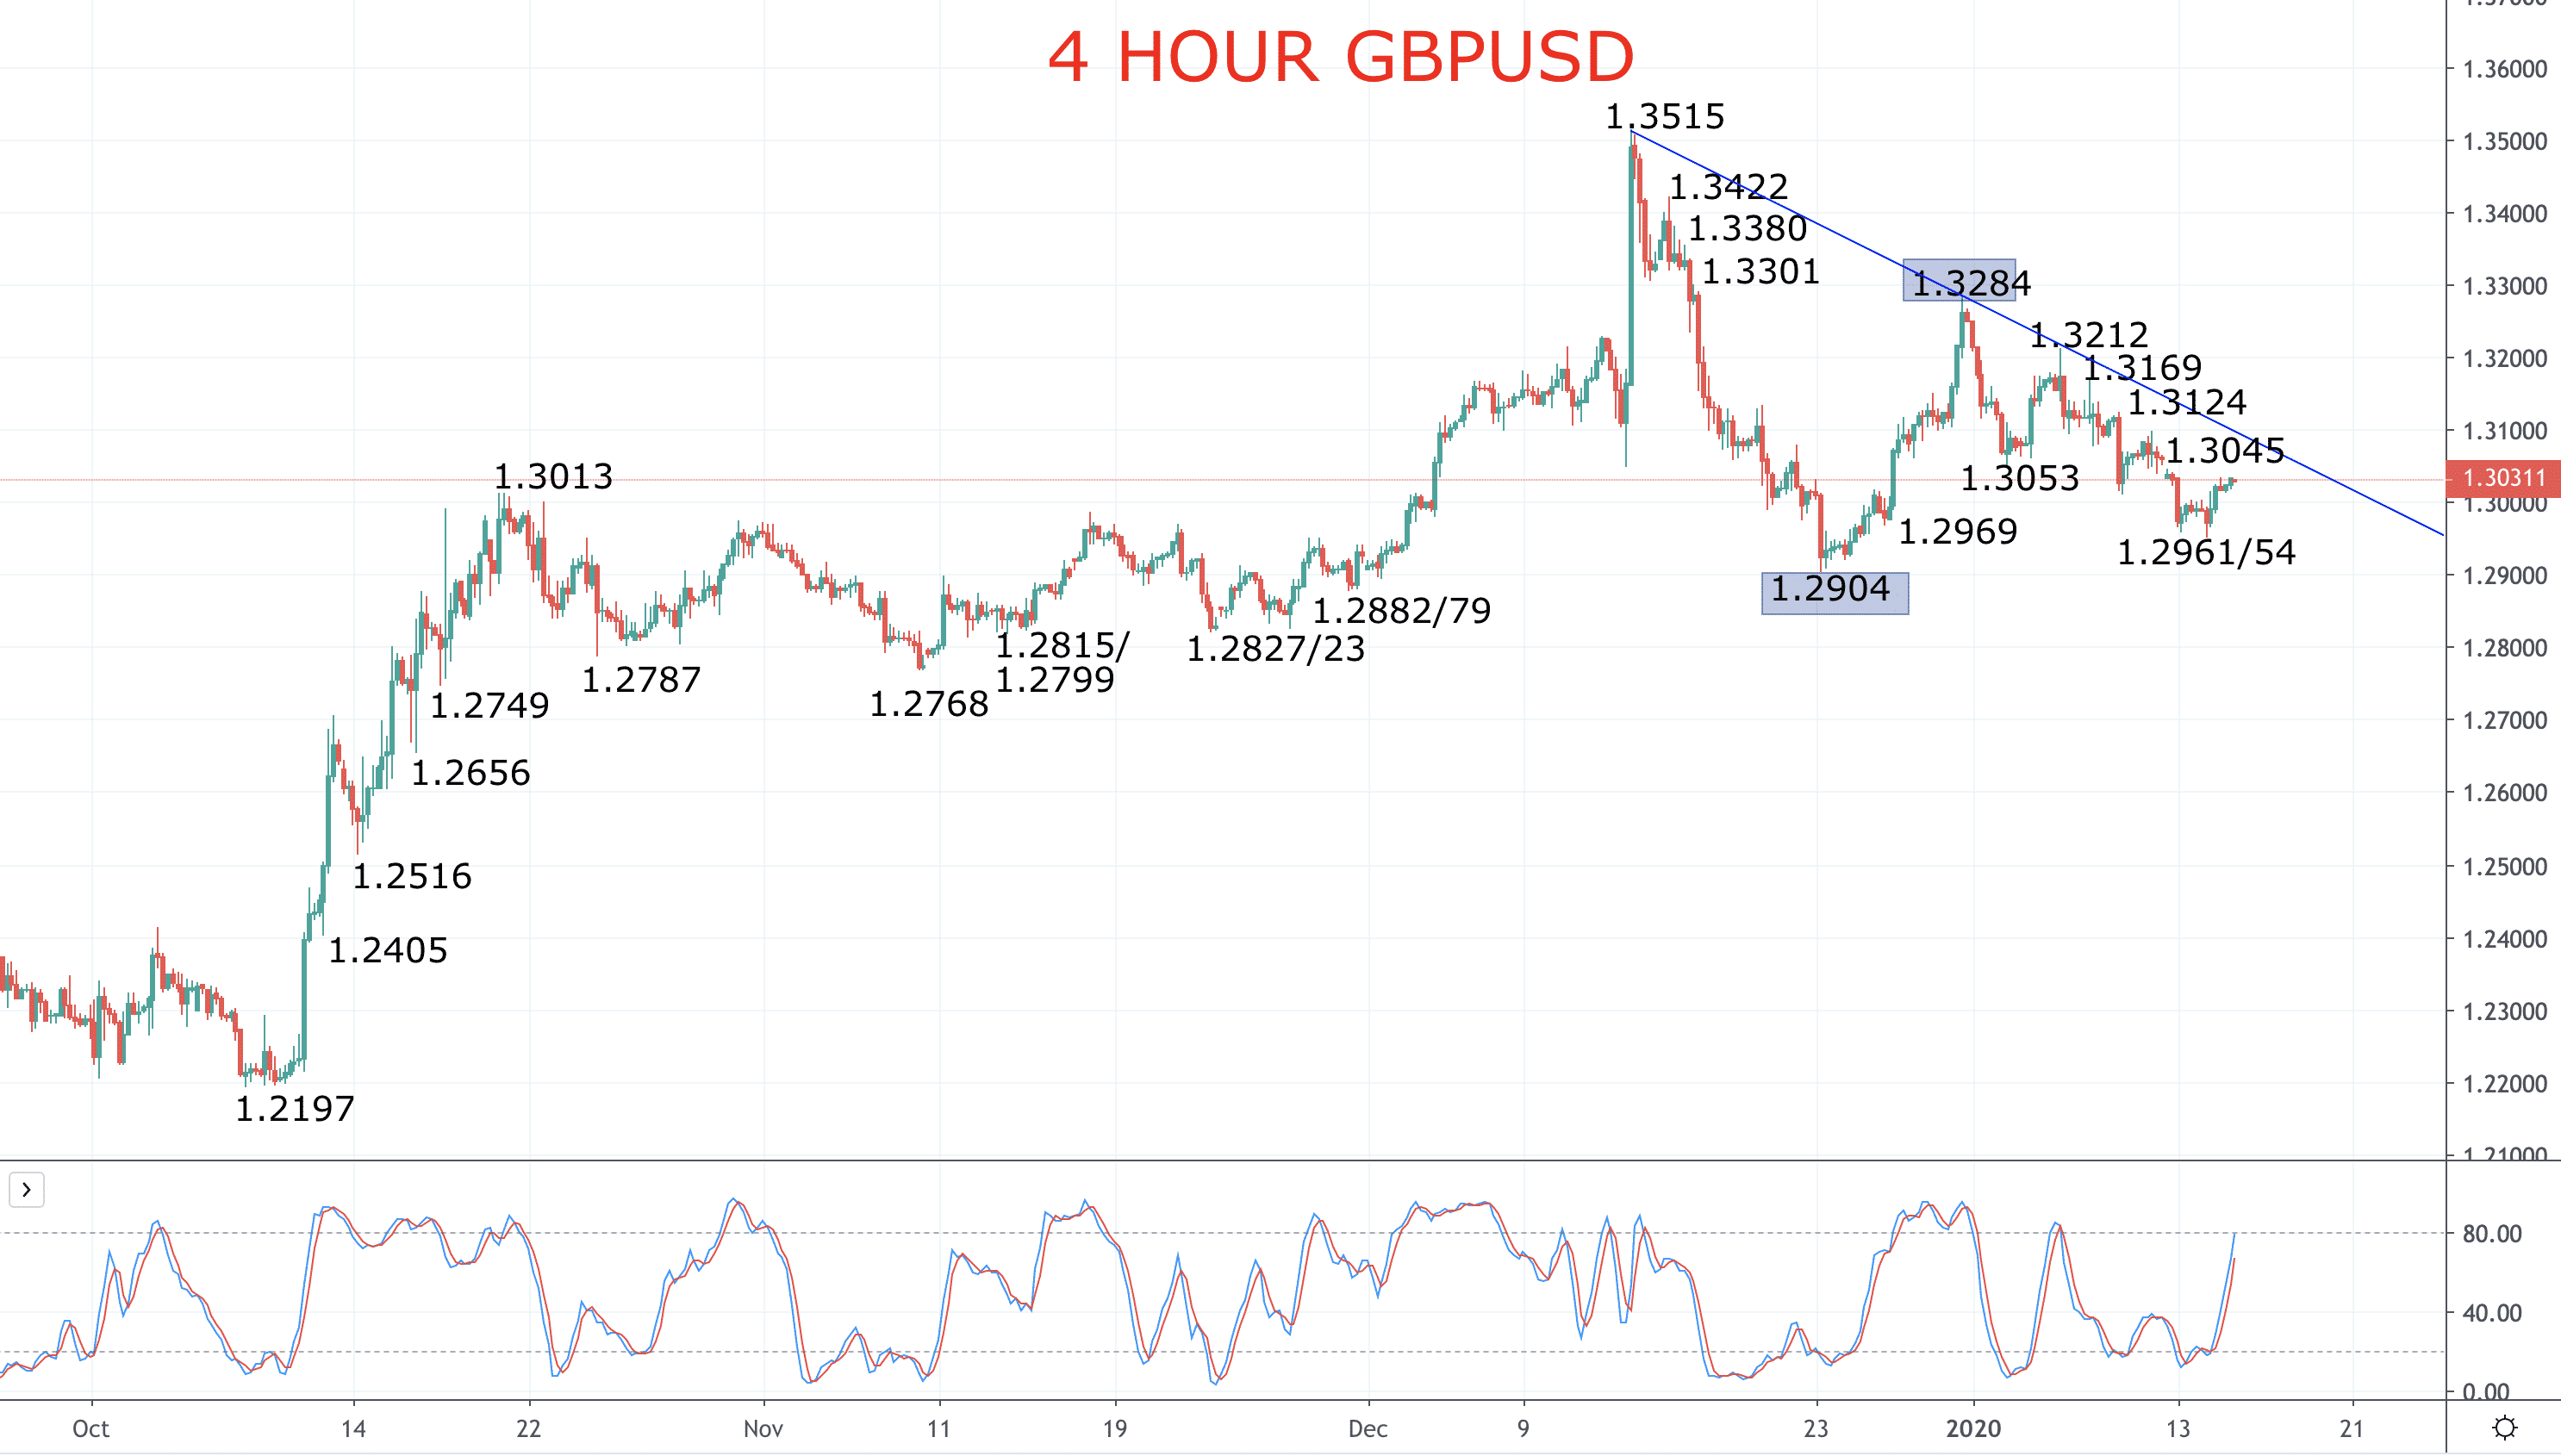 Pound stays vulnerable to losses – GBPUSD forecast Image